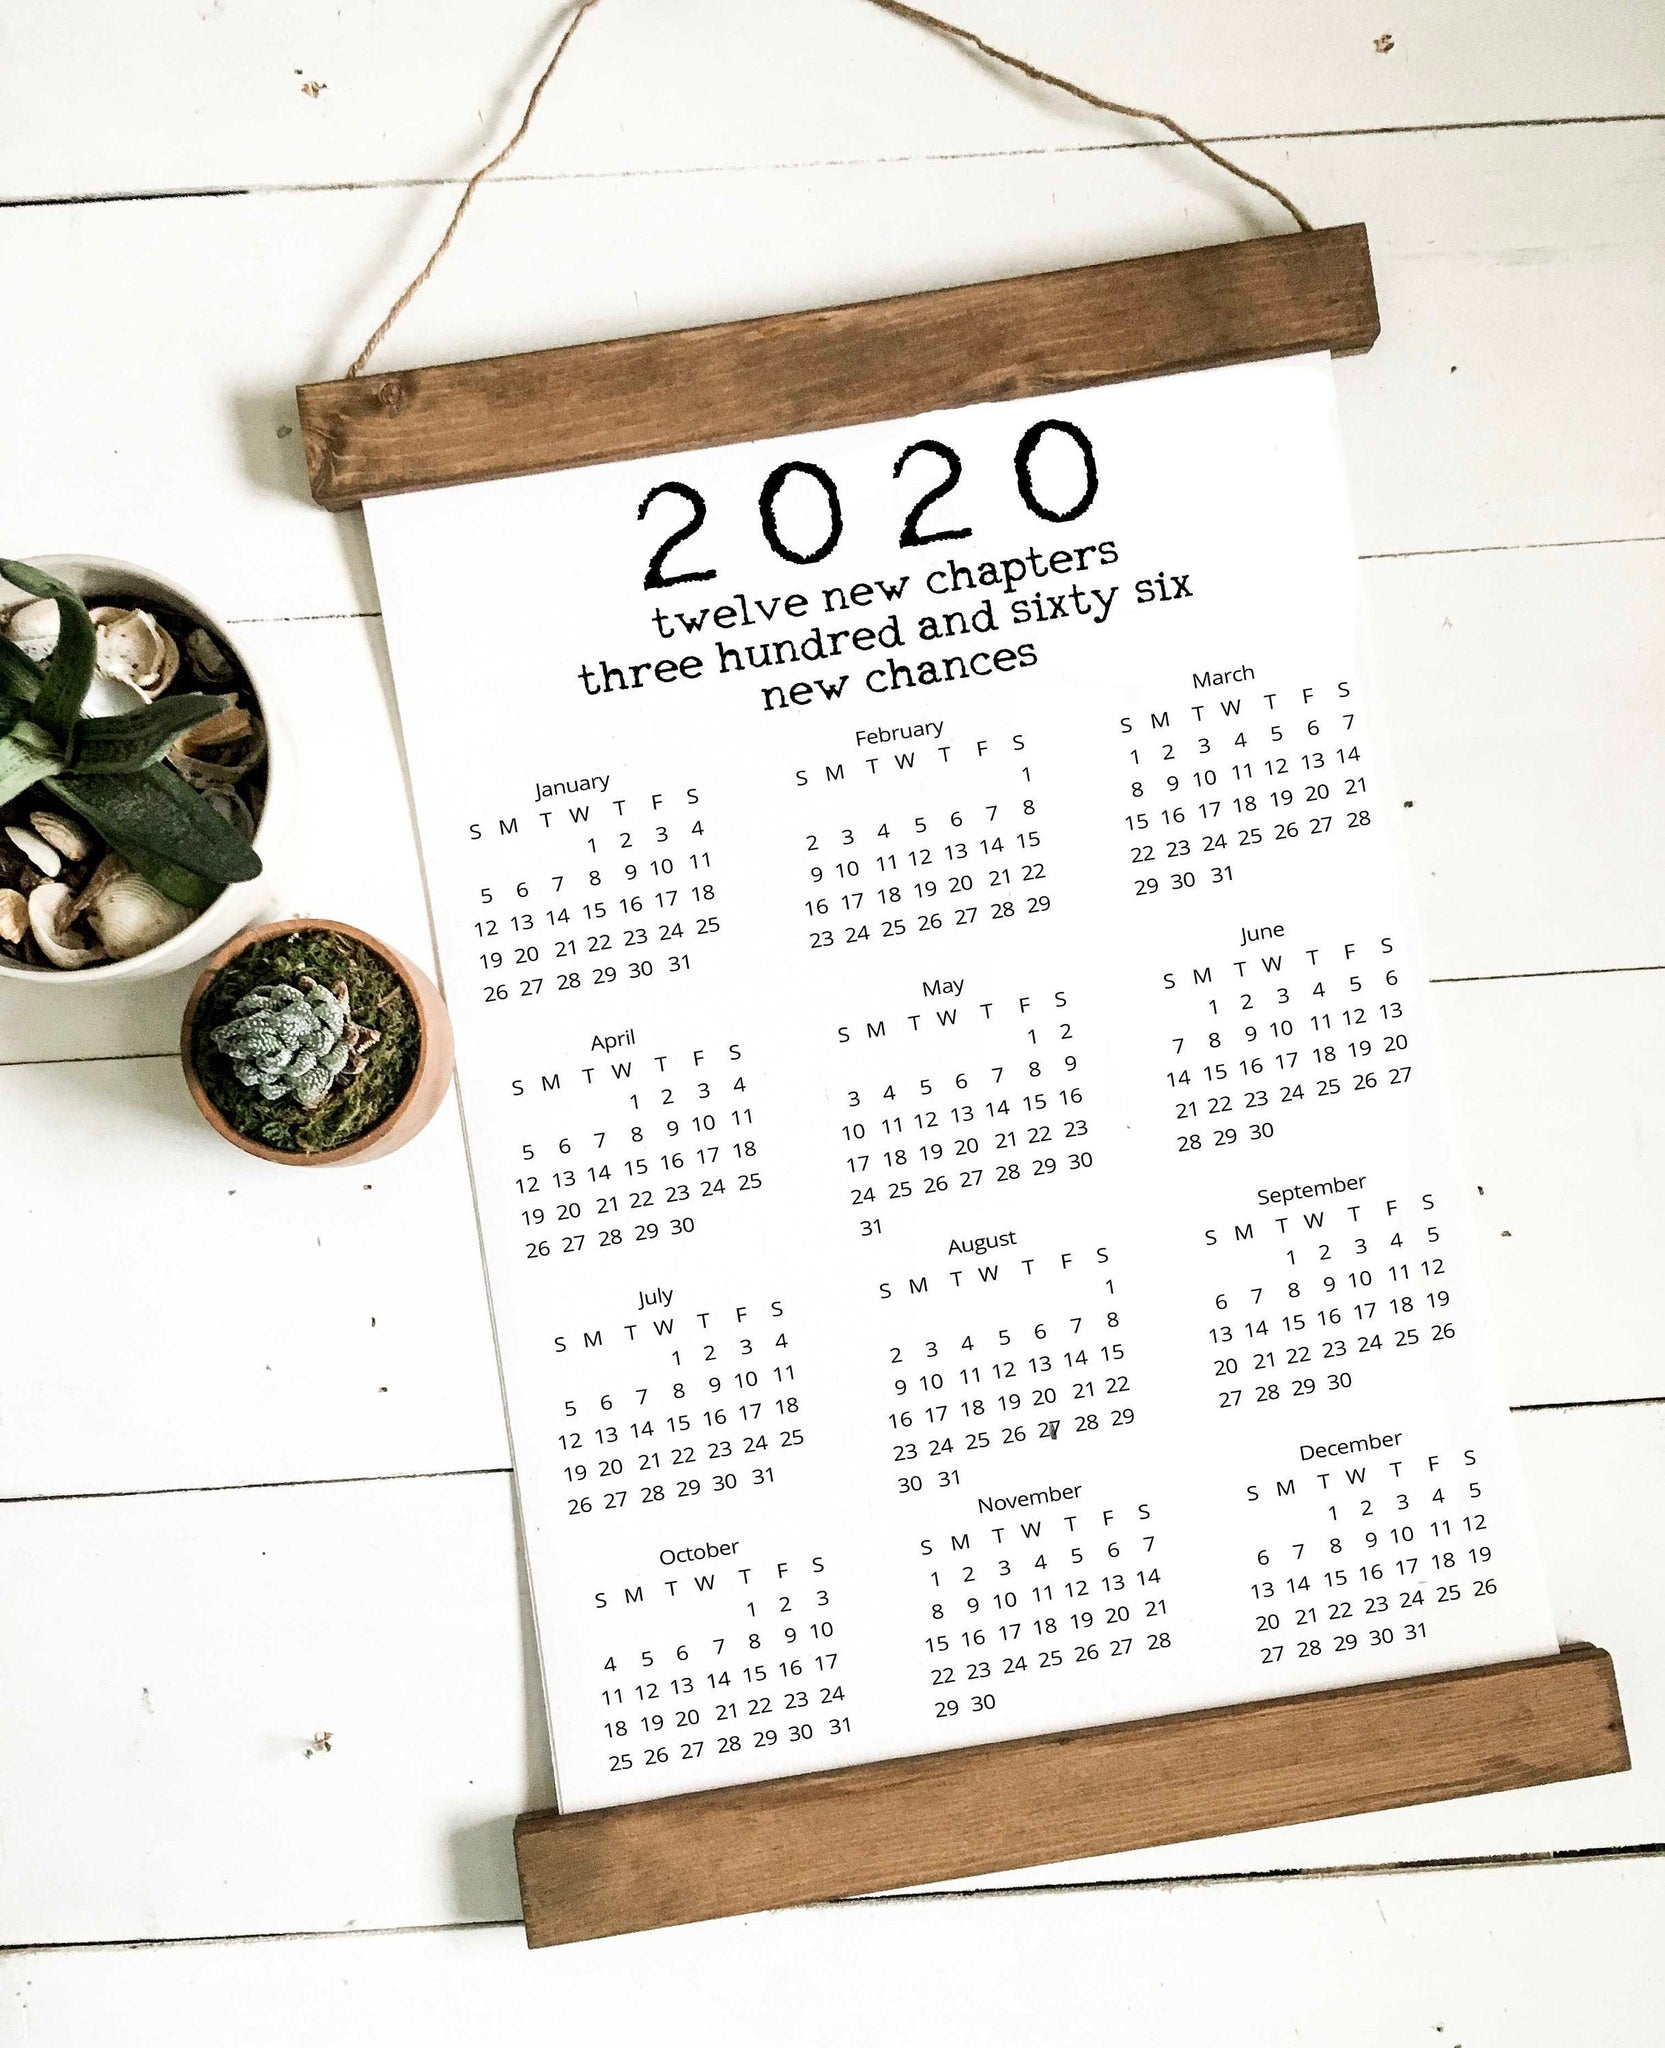 Calendar 2020/wall calendar/new chances/calendar/wall art/canvas print/wall decor